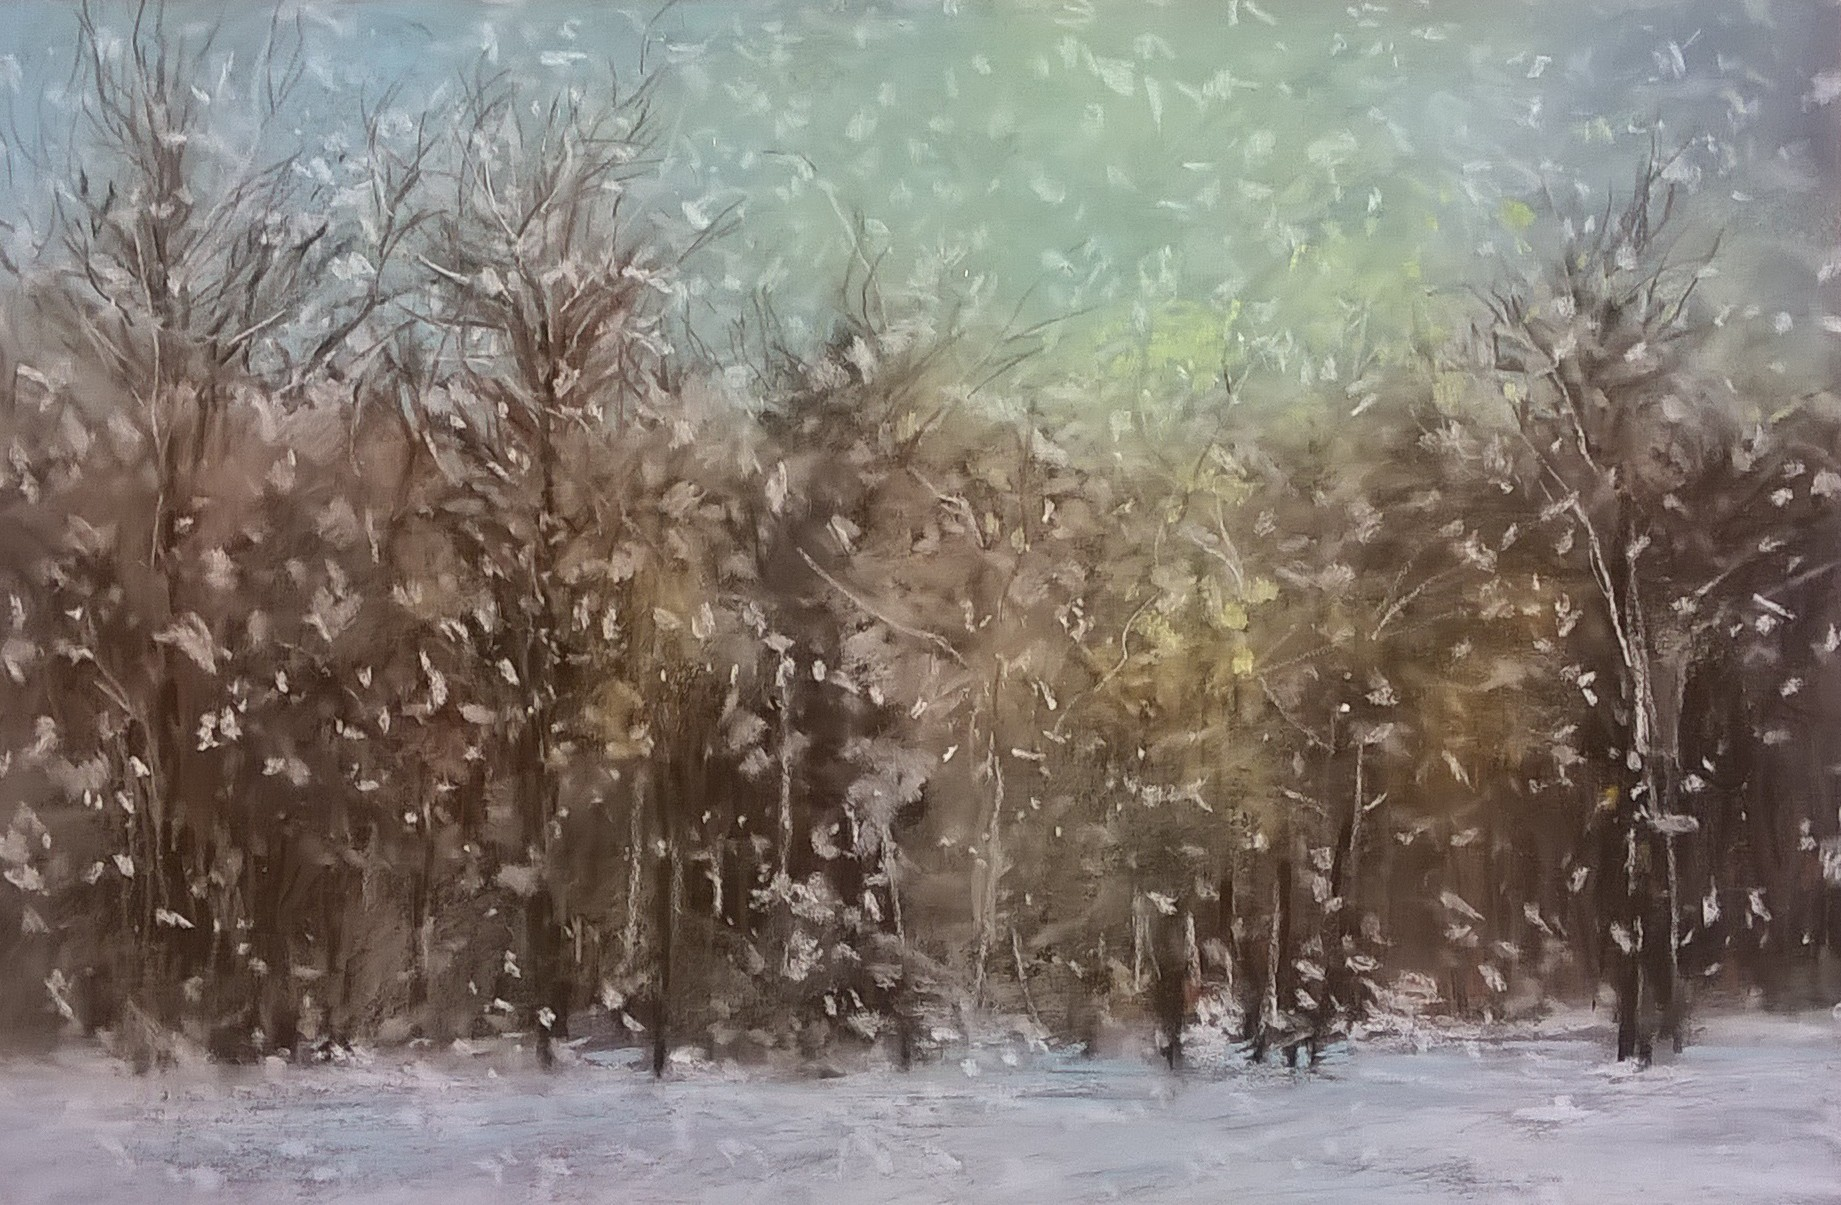 Flurries   Pastel on Copper, 18 x 12 in   29.25 x 23.50 in framed   $1,500